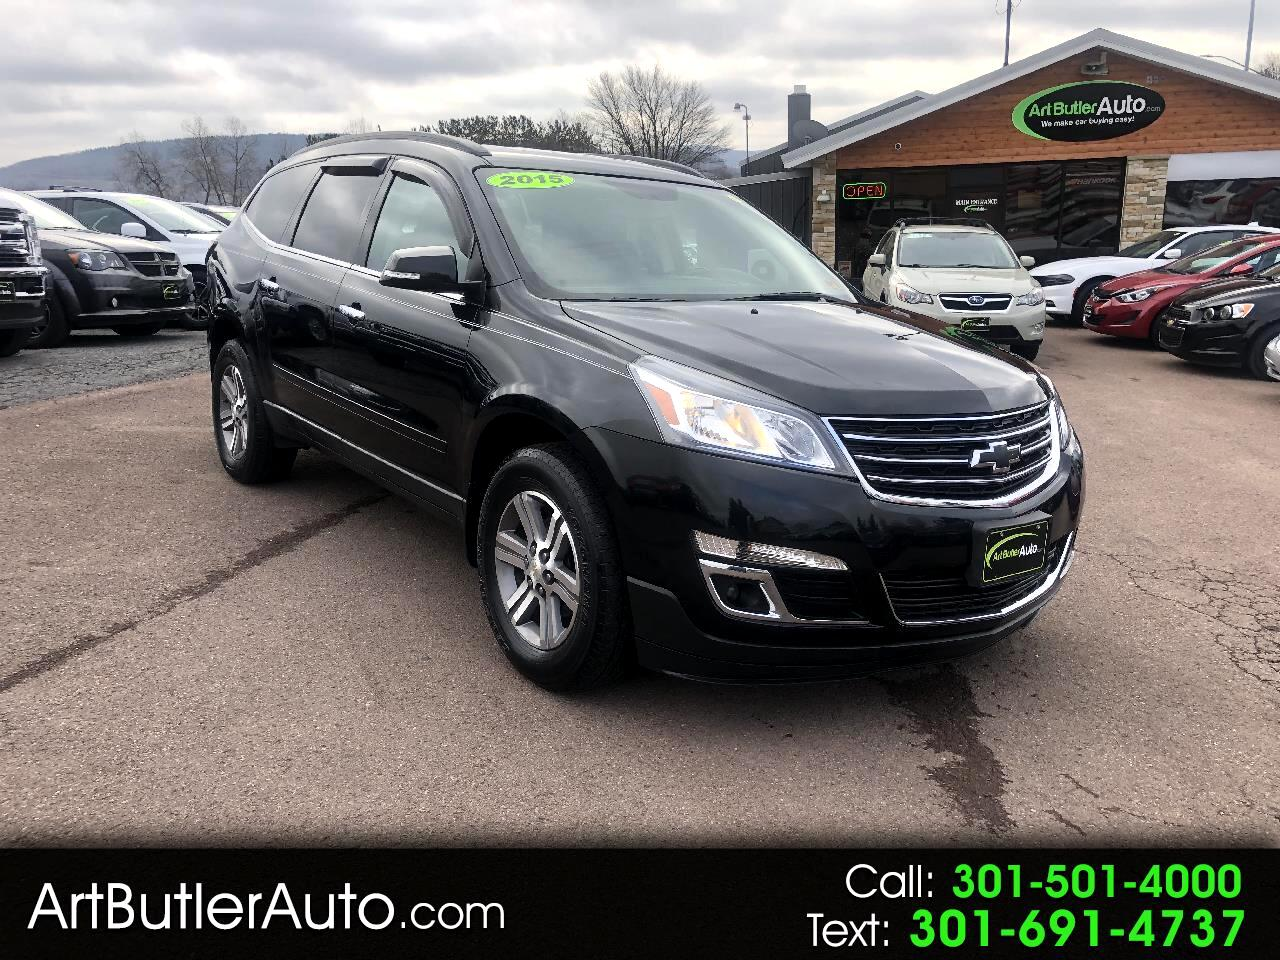 2015 Chevrolet Traverse AWD 4 DR LT